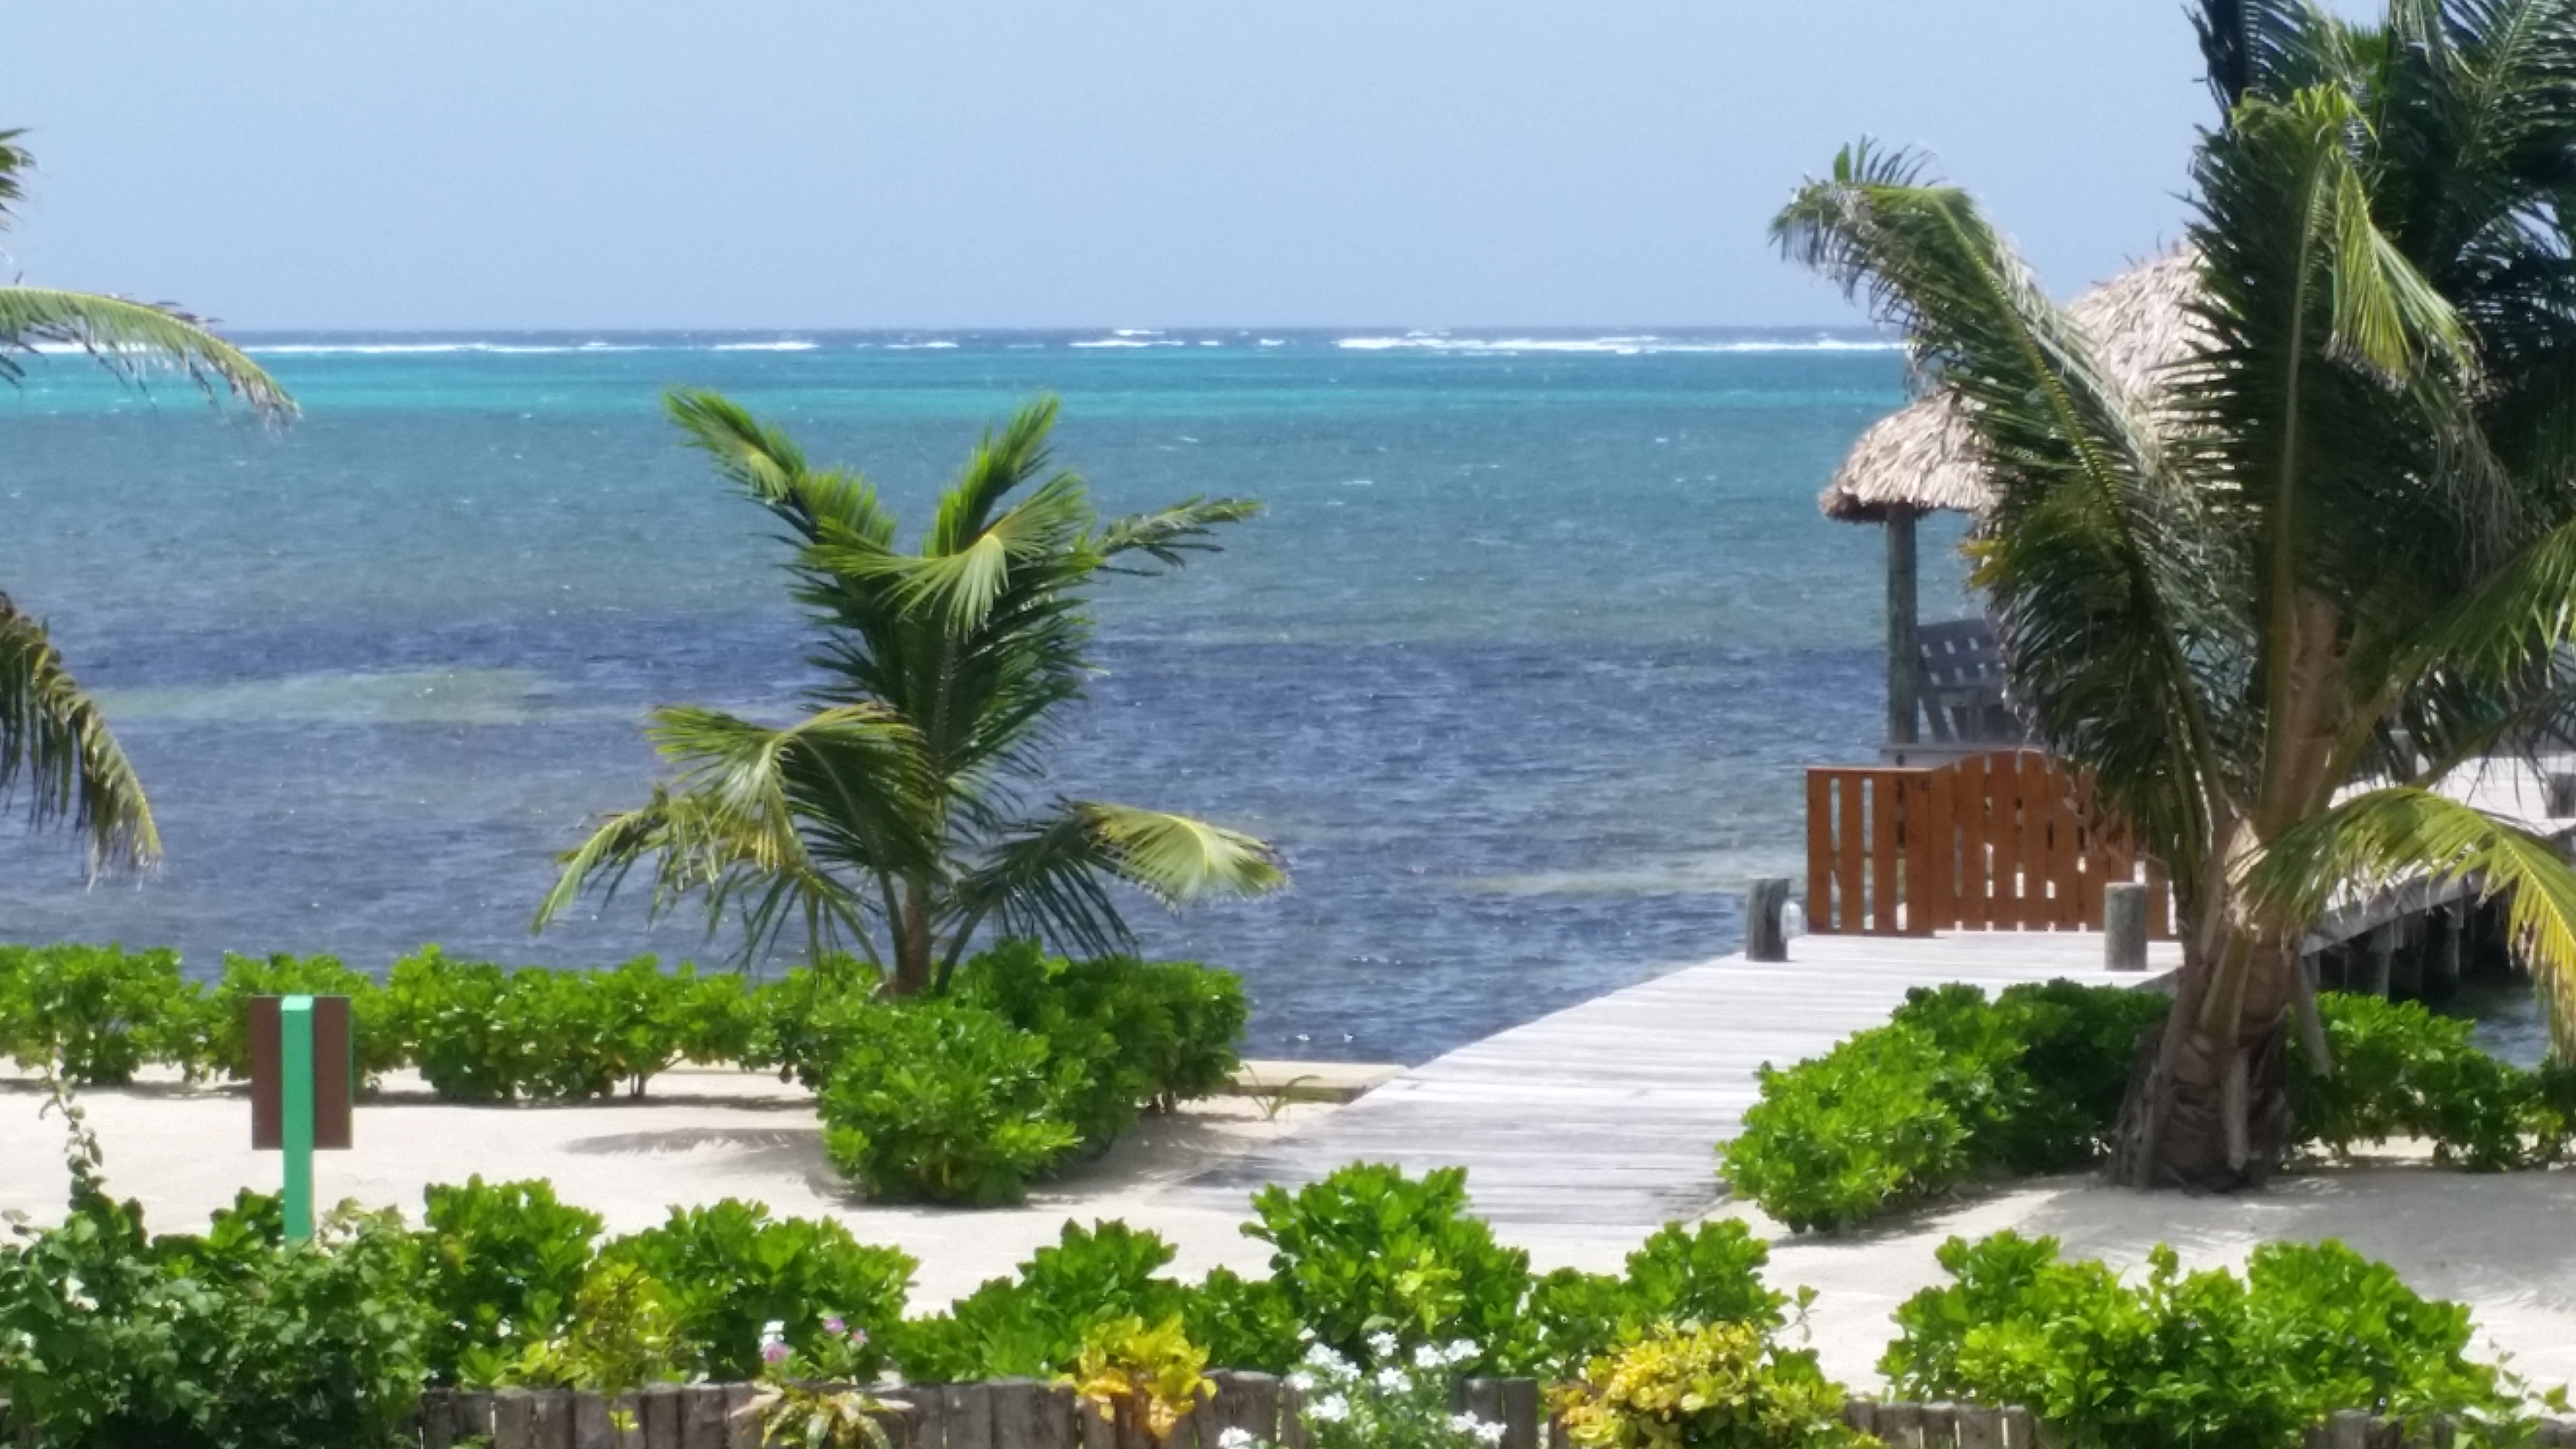 Belize Barrier Reef Viewed from Canary Cove